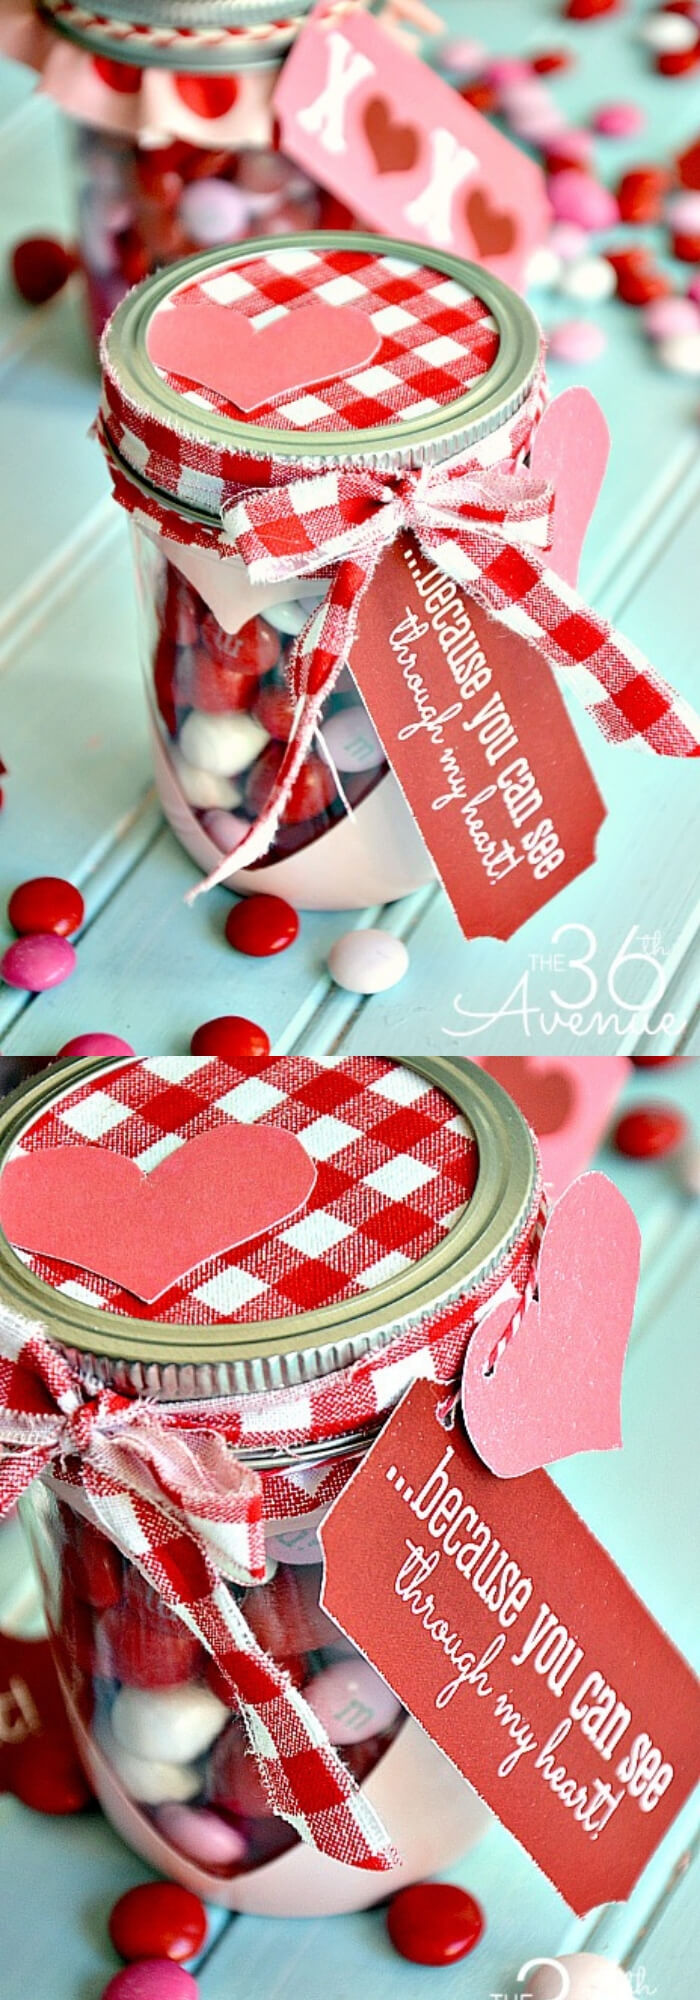 Free Valentine Printable and Heart Candy Jar | DIY Mason Jar Gift Ideas For Valentine's Day | FarmFoodFamily.com